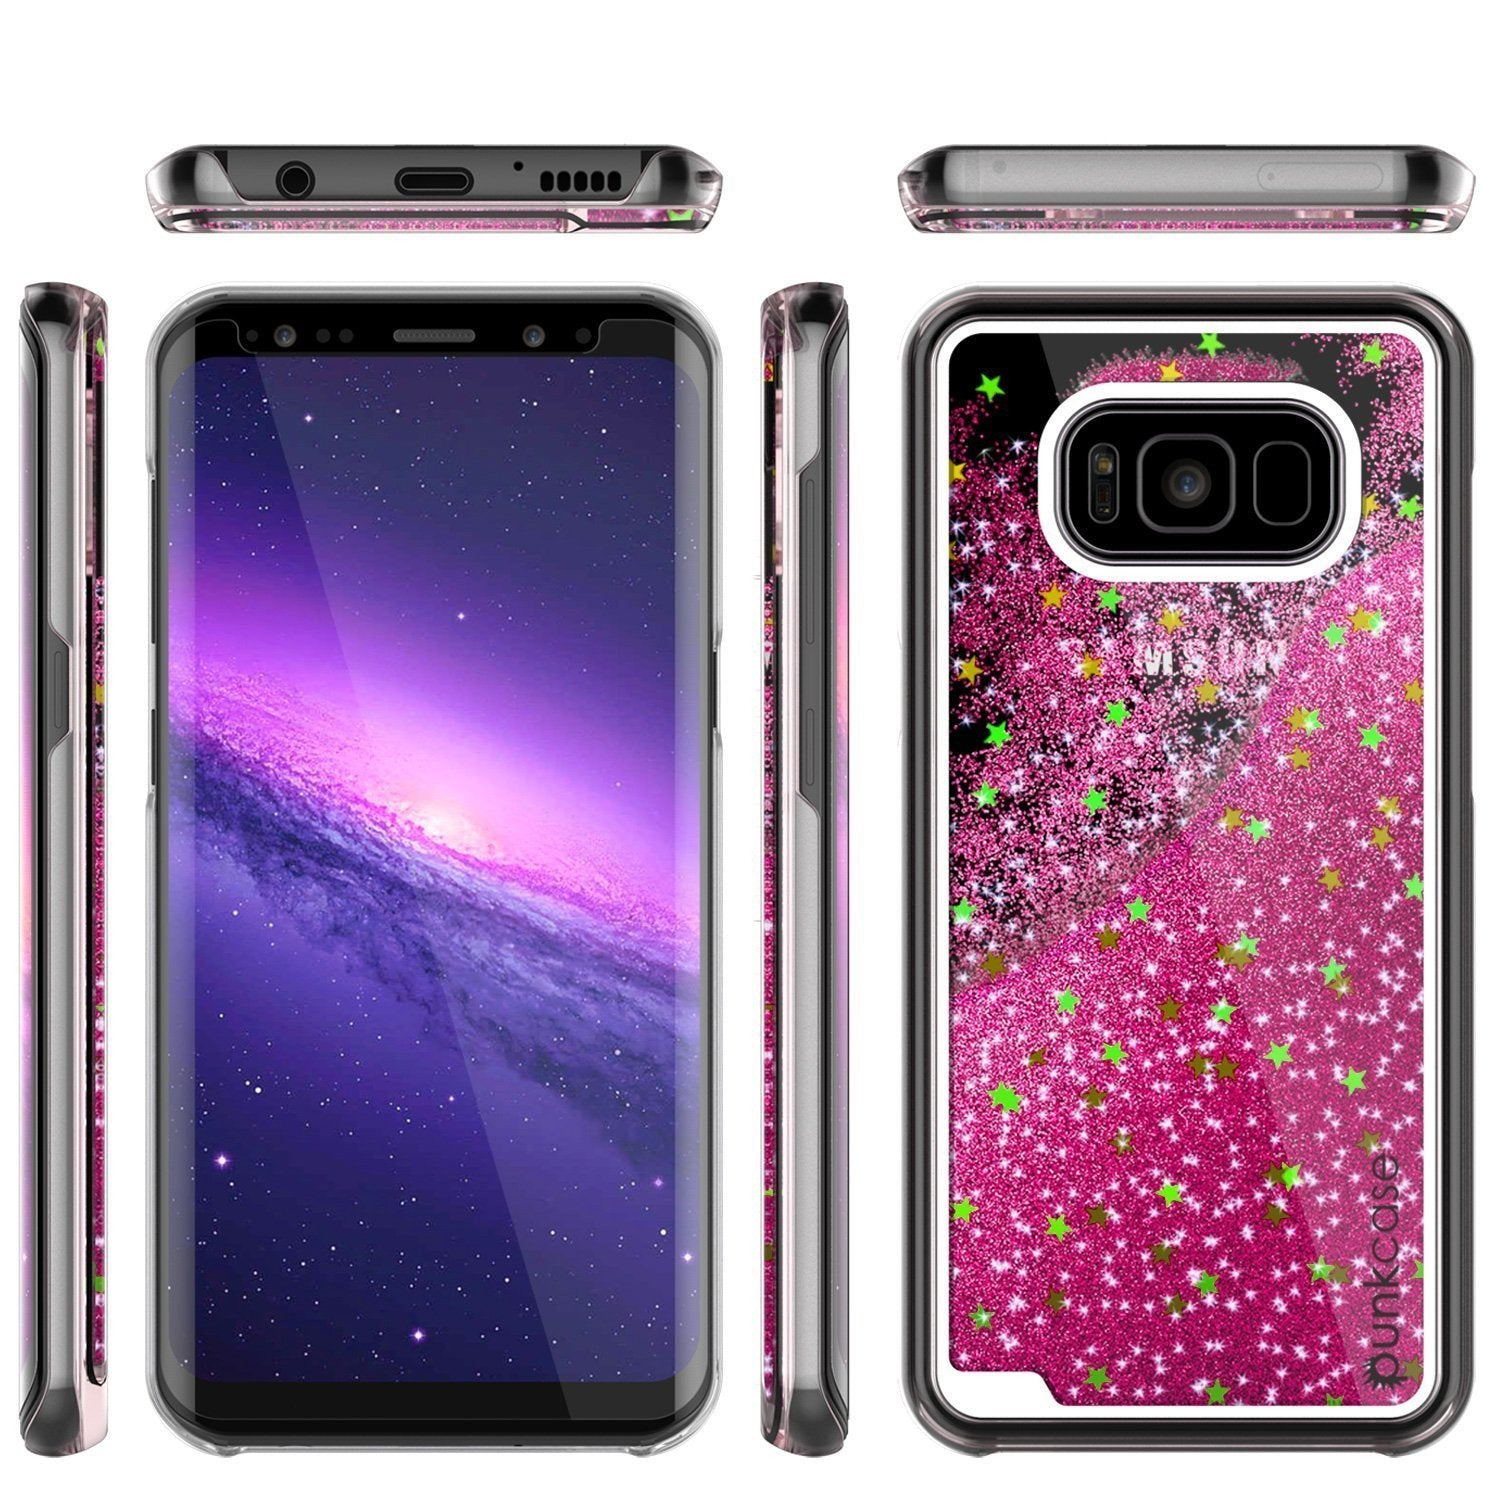 Galaxy S8 Case, Punkcase [Liquid Series] Protective Dual Layer Floating Glitter Cover with lots of Bling & Sparkle + PunkShield Screen Protector for Samsung S8 [Pink] - PunkCase NZ